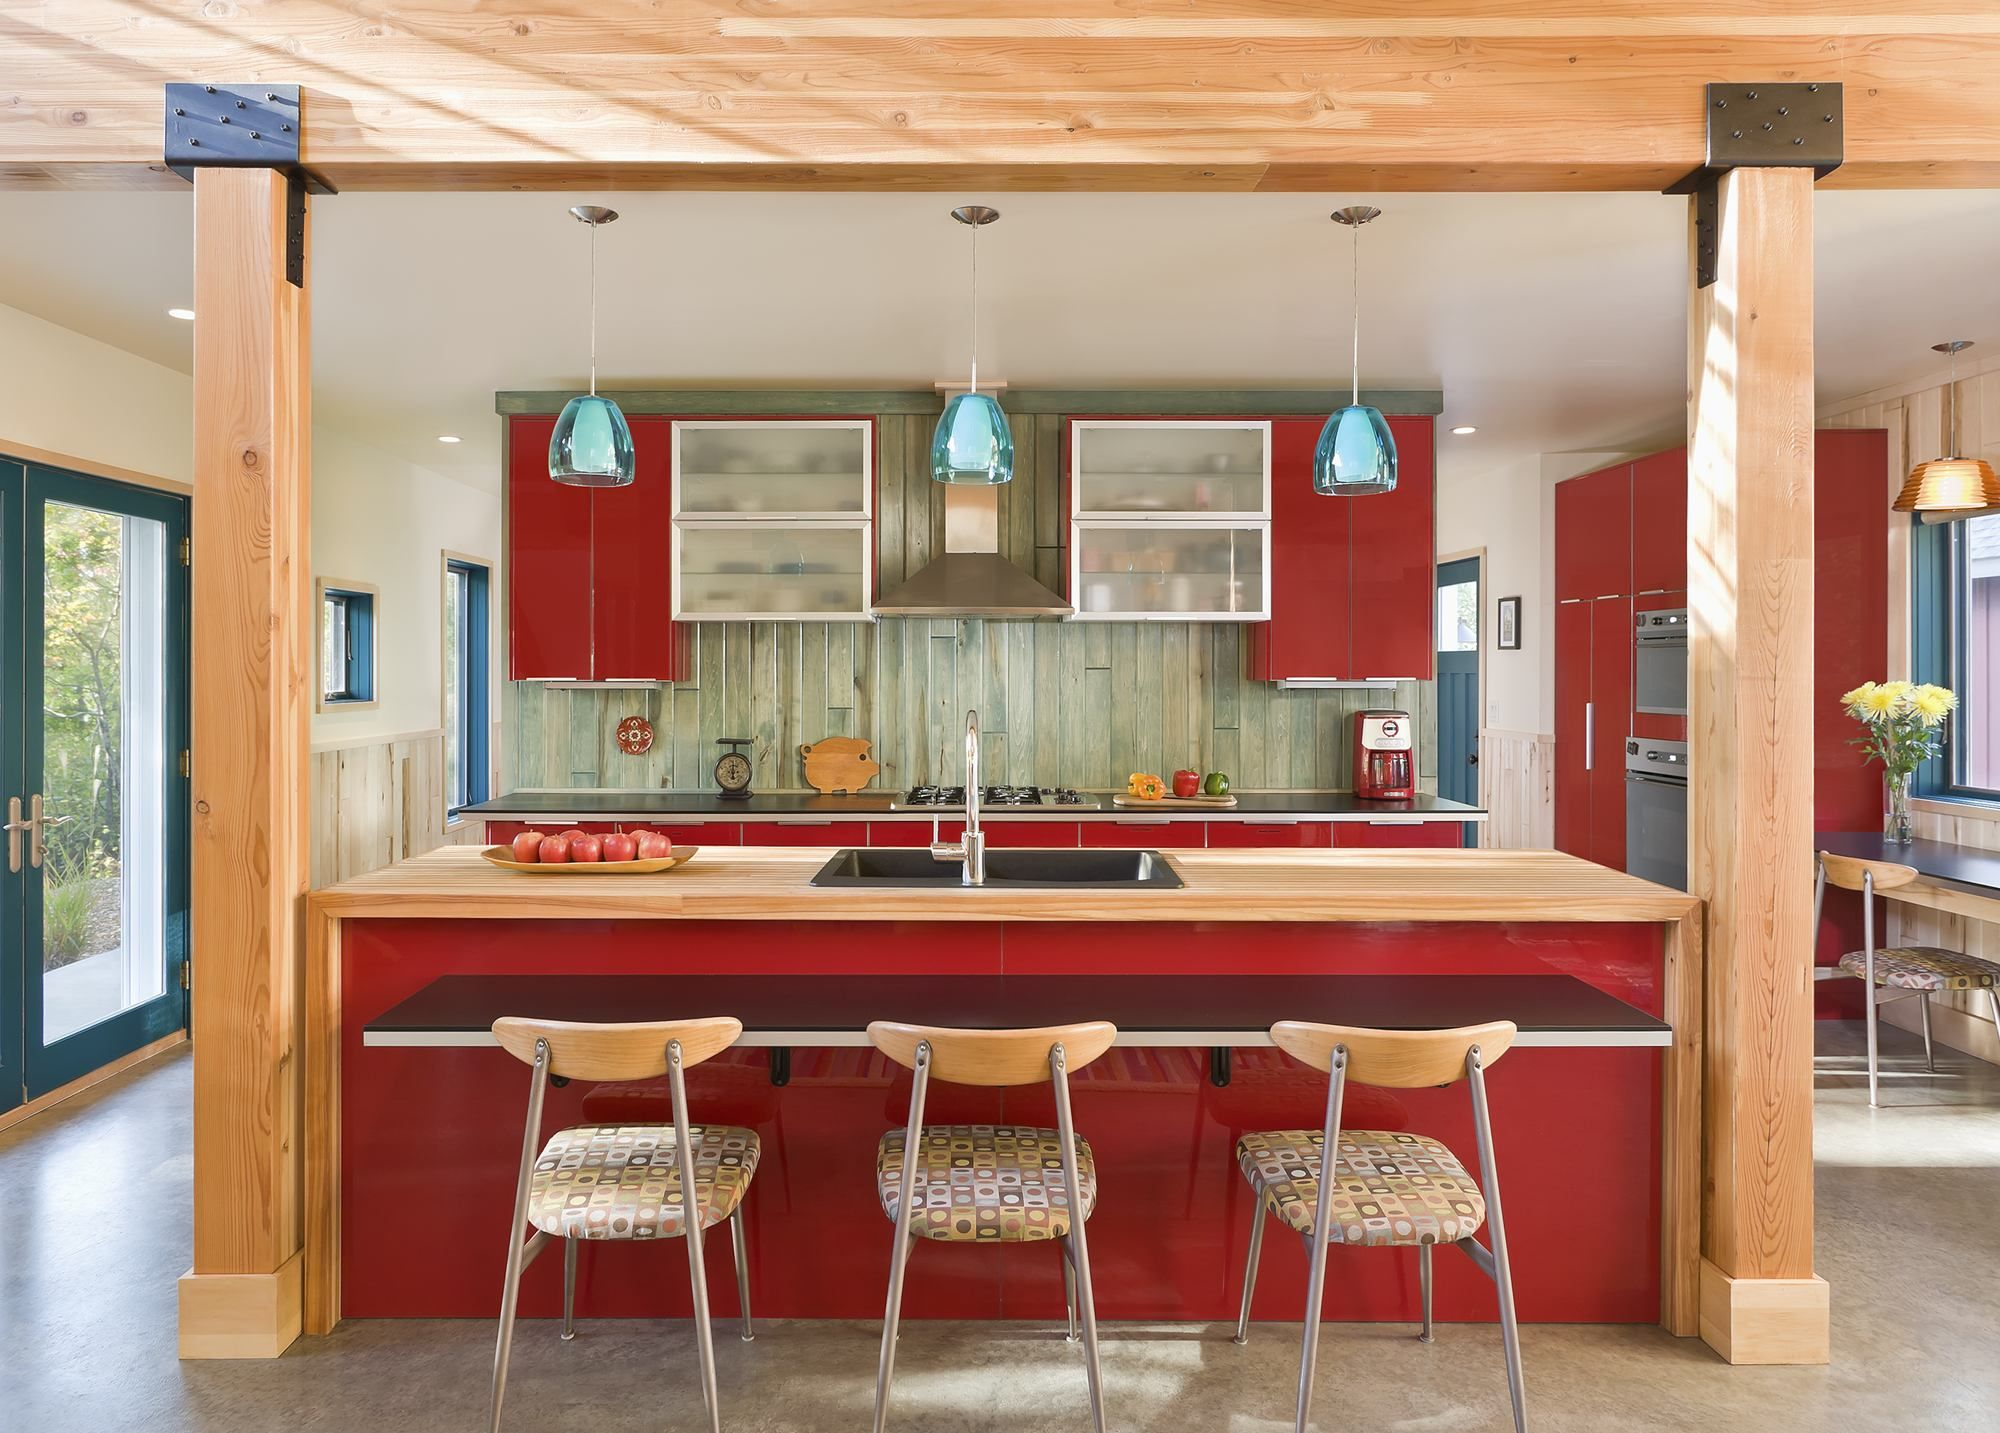 Trendy Style For Red Kitchen Design Ideas With Rectangular Kitchen Hidup Sehat Hidup